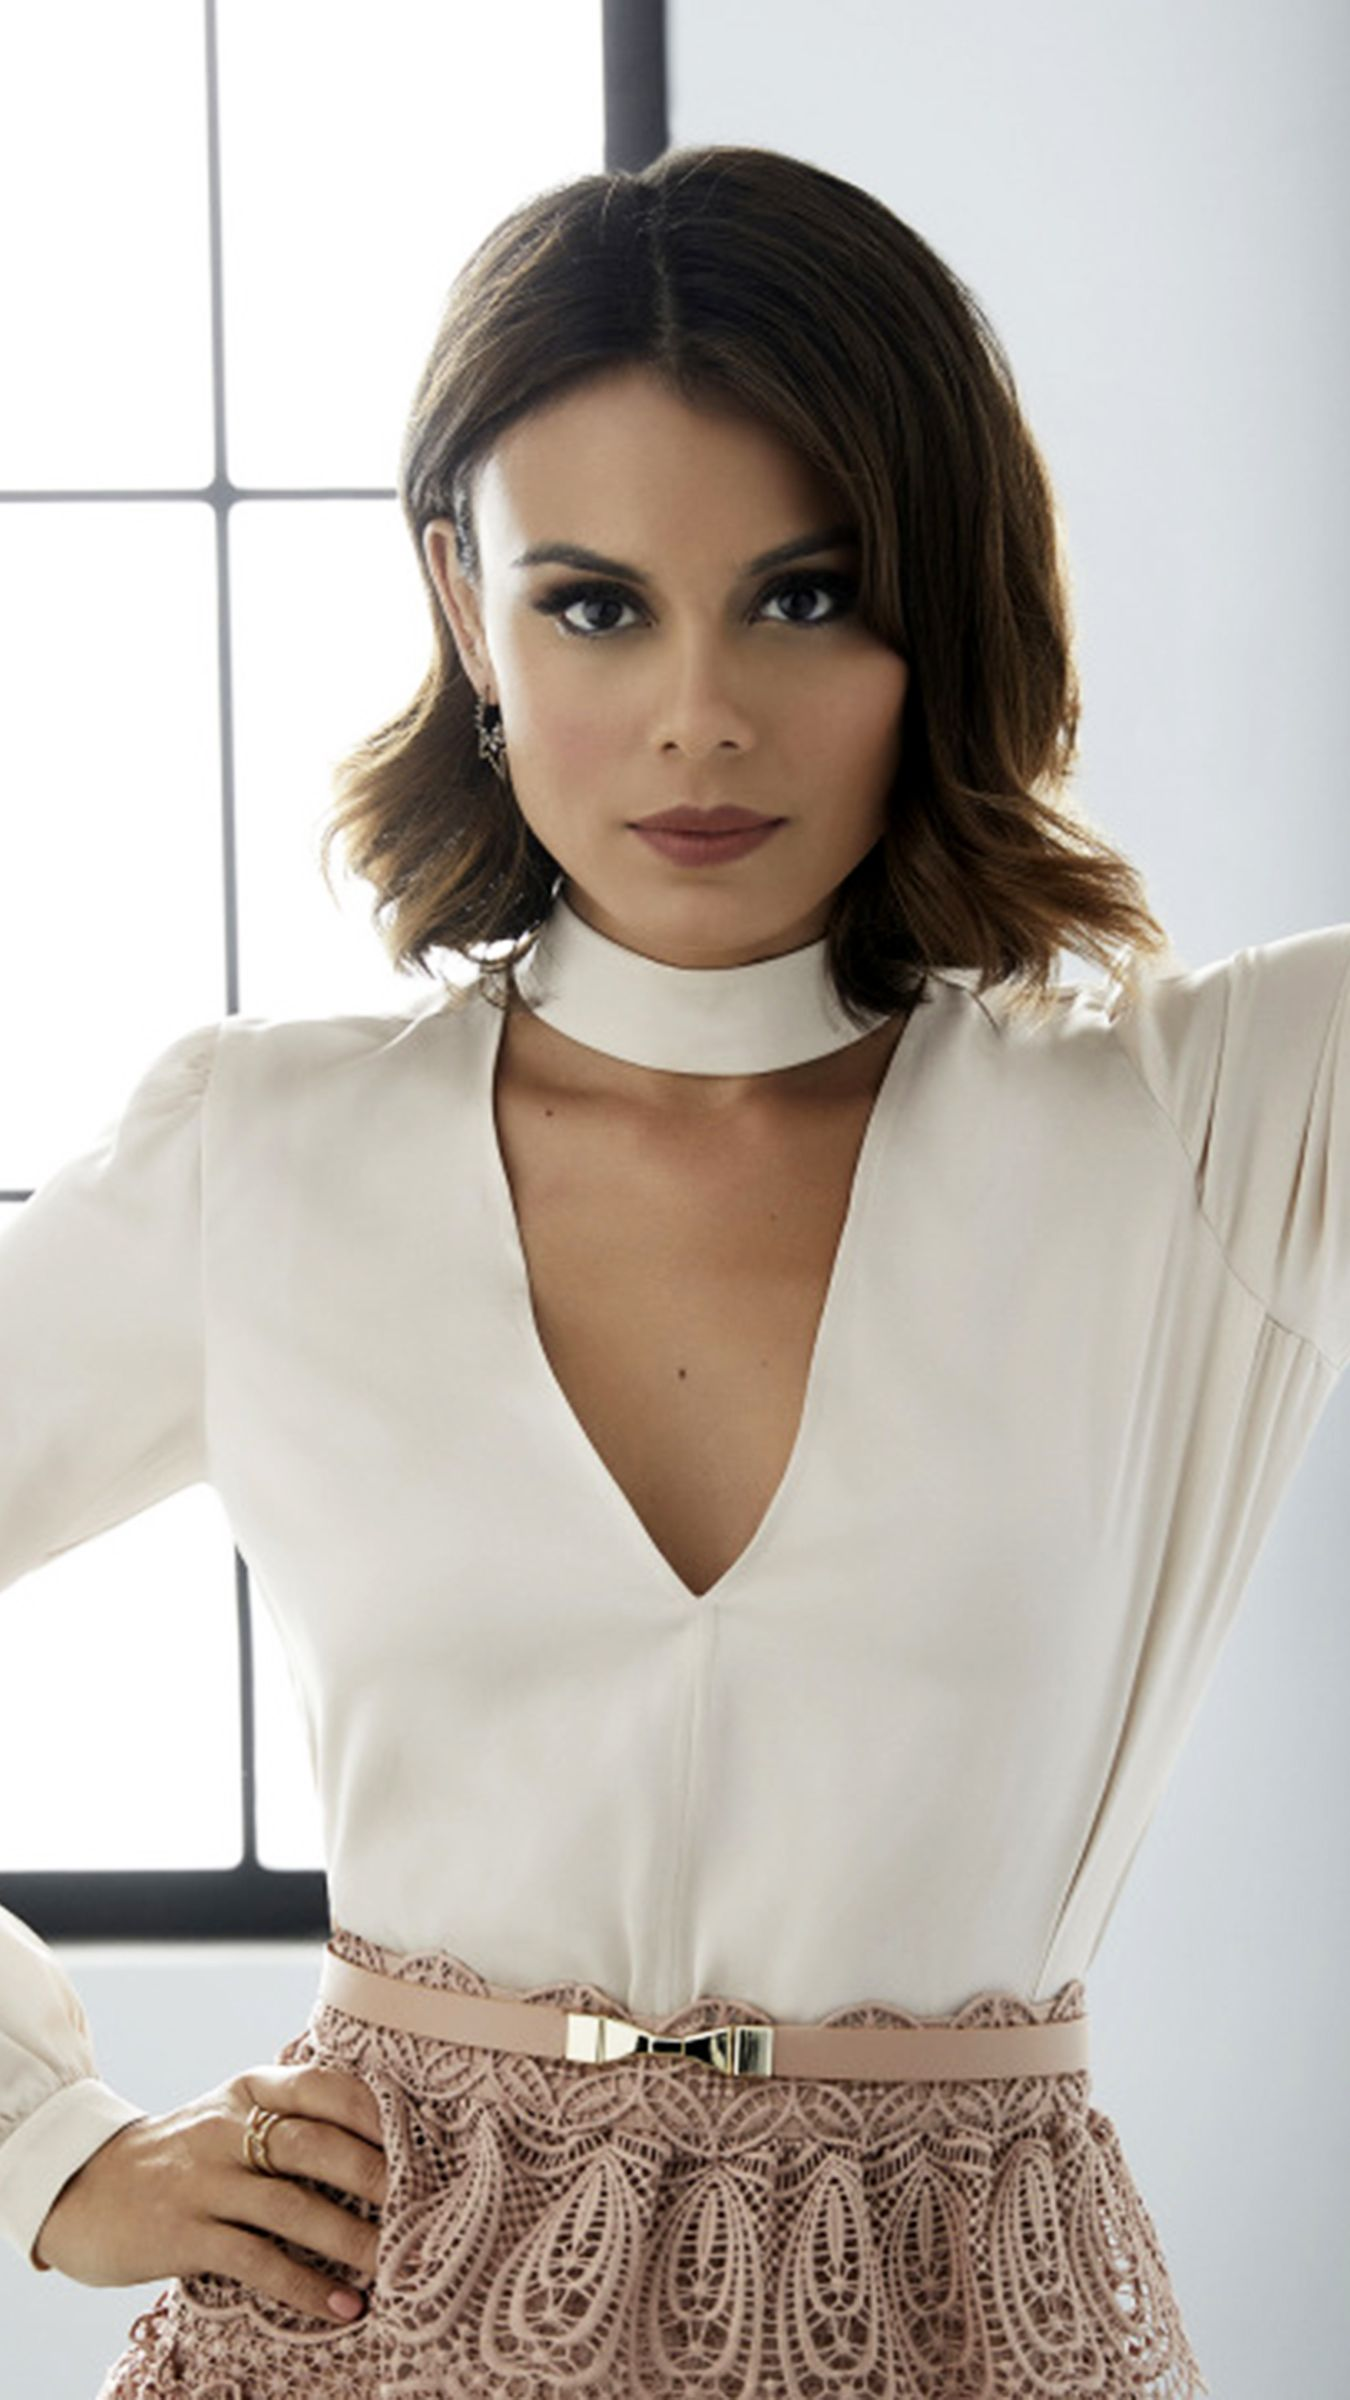 Nathalie Kelley Nathalie Kelley new photo